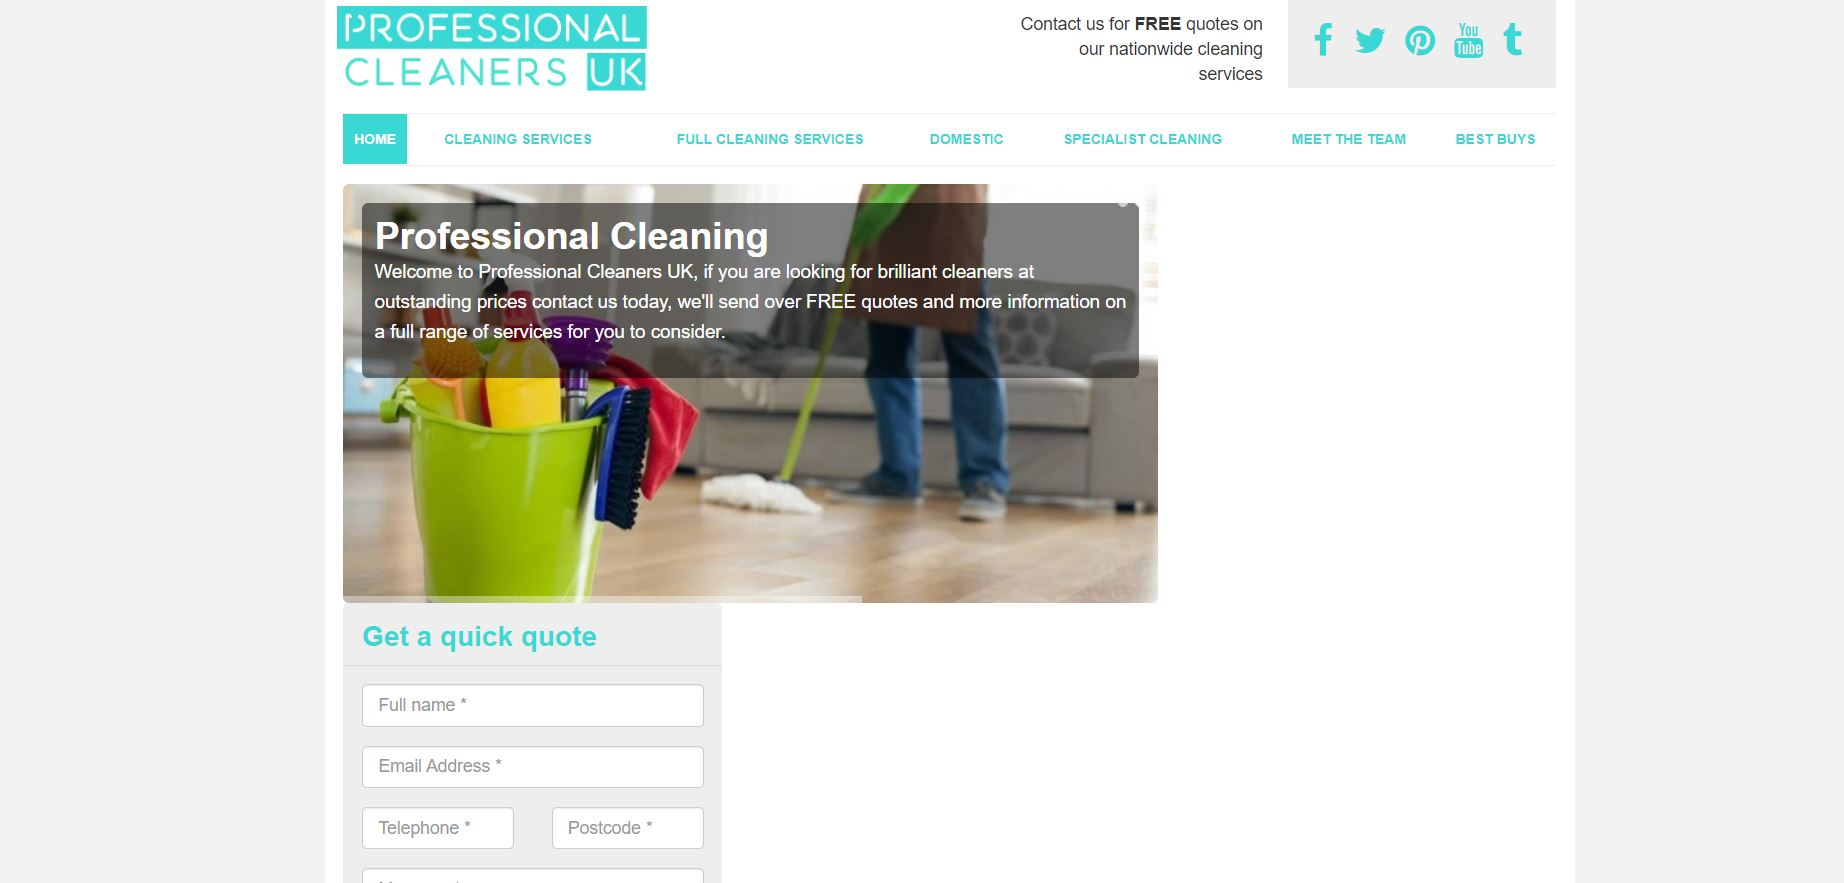 Professional Cleaners UK